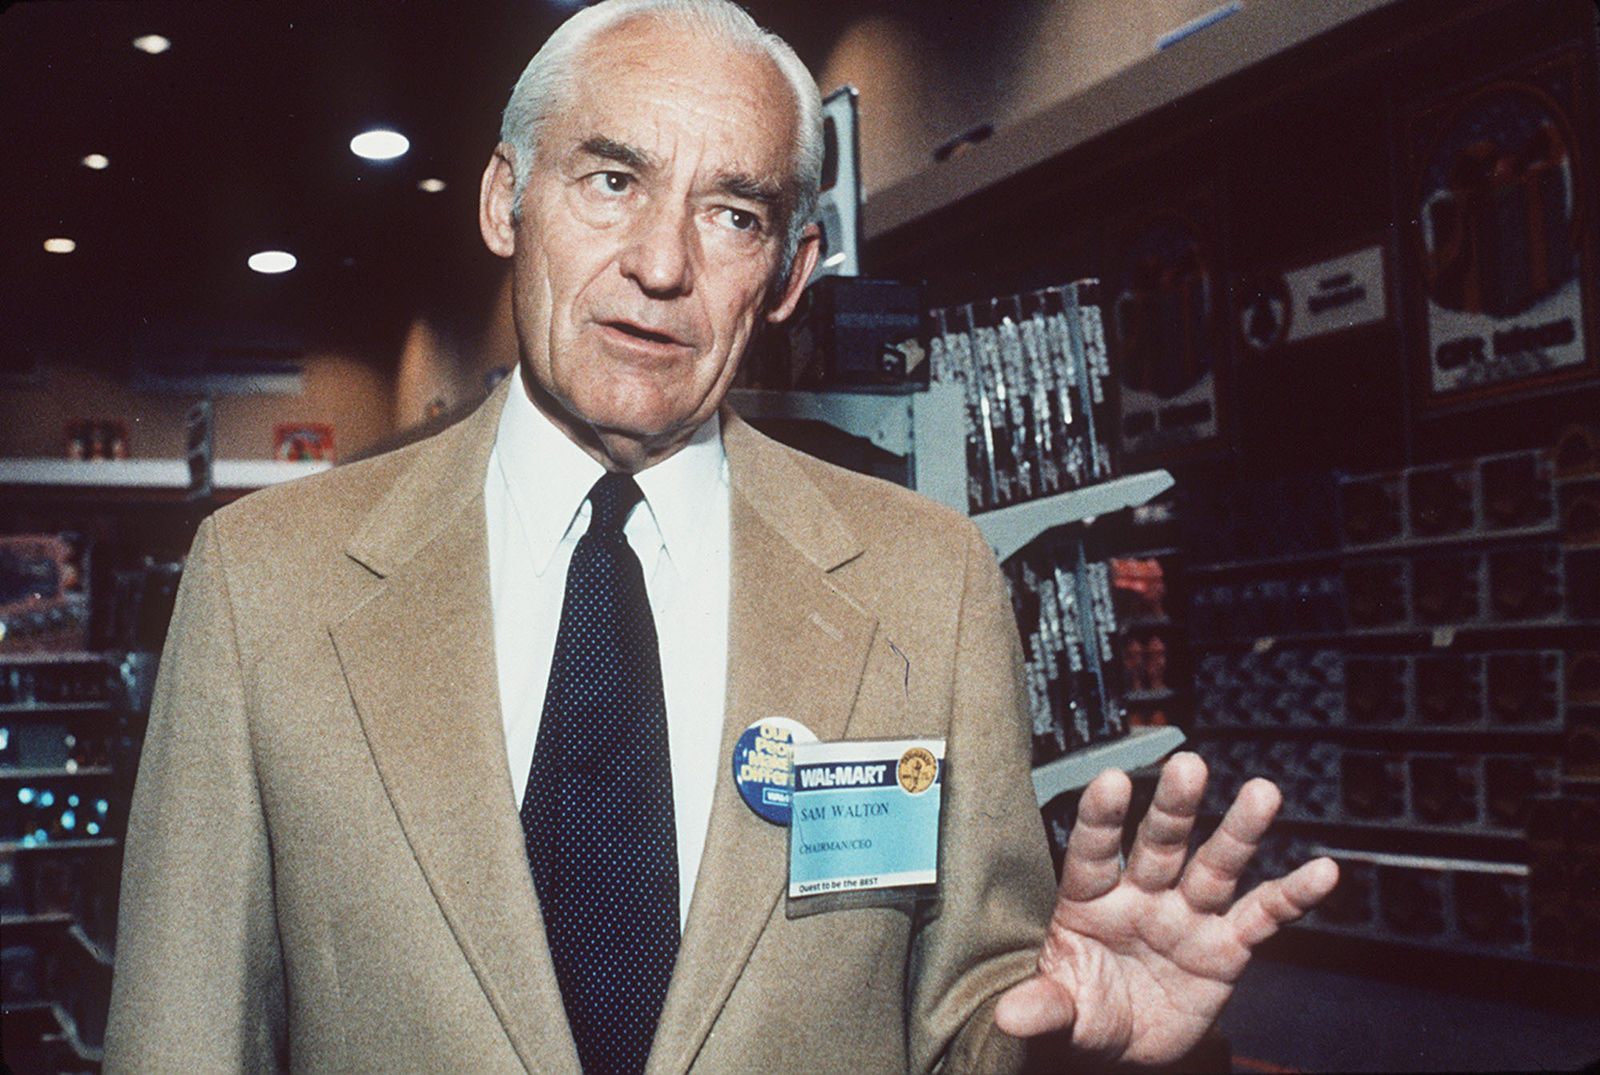 FILE- In this July 7, 1984, file photo, Sam Walton talks to reporters in Little Rock, Ark. The namesake foundation of Walton of the Walmart retail empire has been the largest supporter of privately-run, publicly-funded charter schools that have become politically polarizing. (AP Photos/Danny Johnston, File)